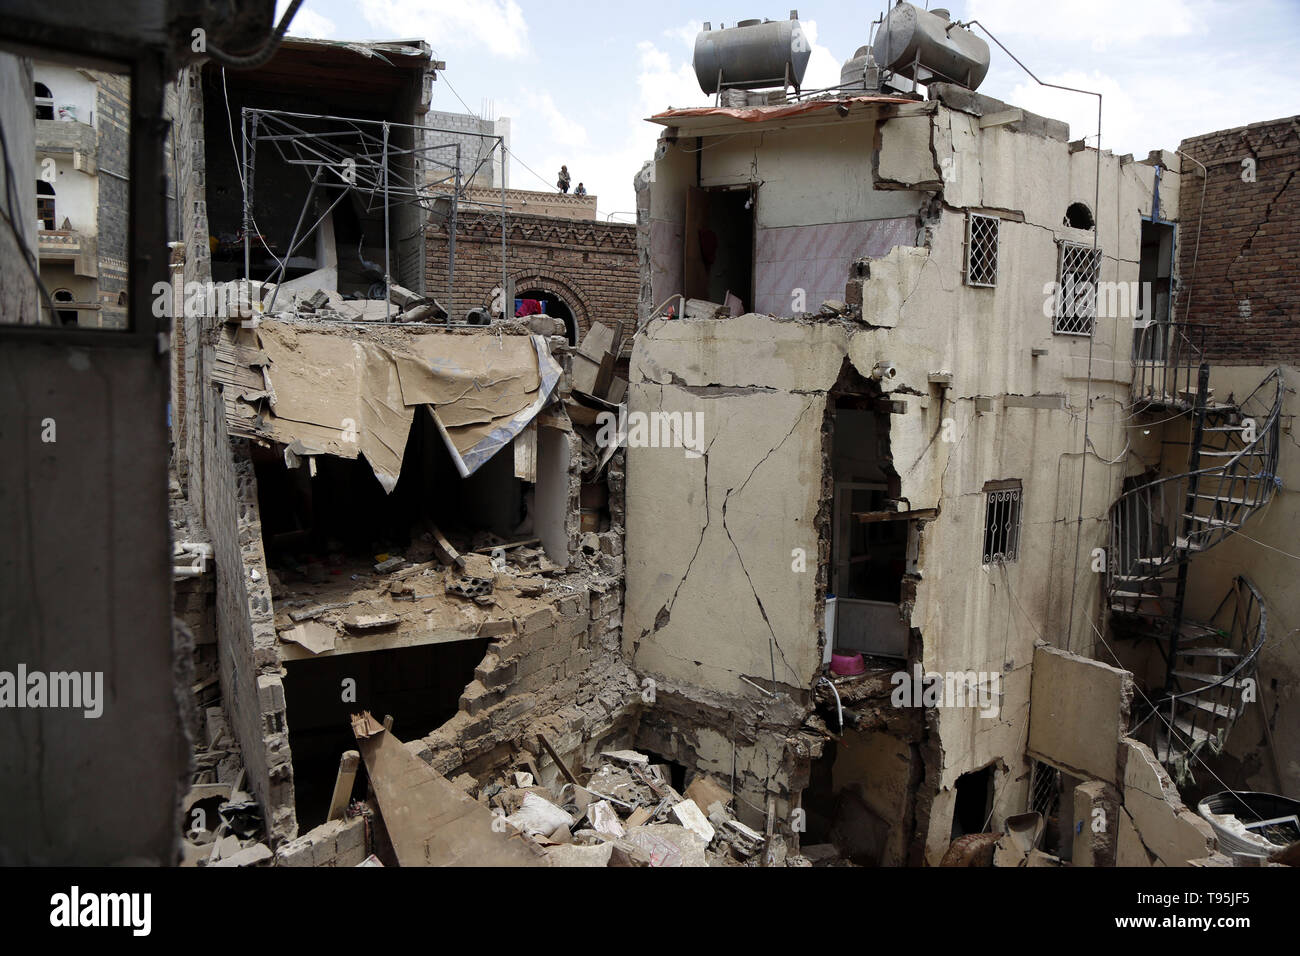 Sanaa, Yemen. 16th May 2019. Photo taken on May 16, 2019 shows damaged houses after an airstrike hit by the Saudi Arabia-led coalition in Sanaa, capital of Yemen. The Saudi Arabia-led coalition launched airstrikes on Houthi rebels' targets in the Yemeni capital Sanaa on Thursday morning, causing civilian casualties and damages, authorities and local residents said. Credit: Xinhua/Alamy Live News - Stock Image